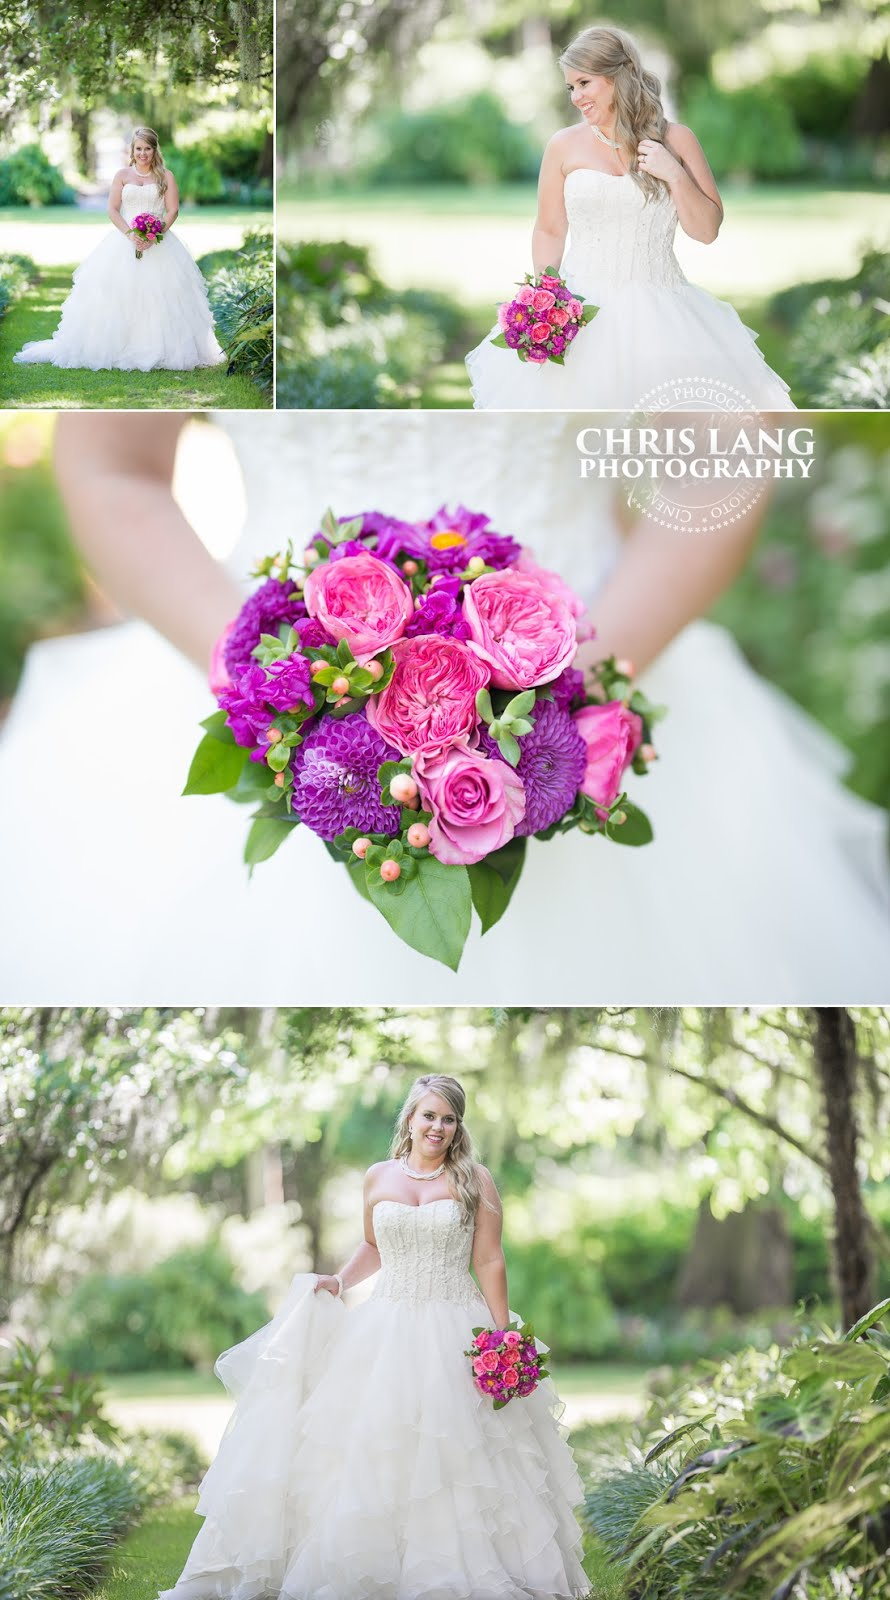 Airlie Gardens - Bridal Photography - Image off Bride - Wedding Dress - Garden Wedding Ideas - Bridal Bouquet - Chris Lang Photography